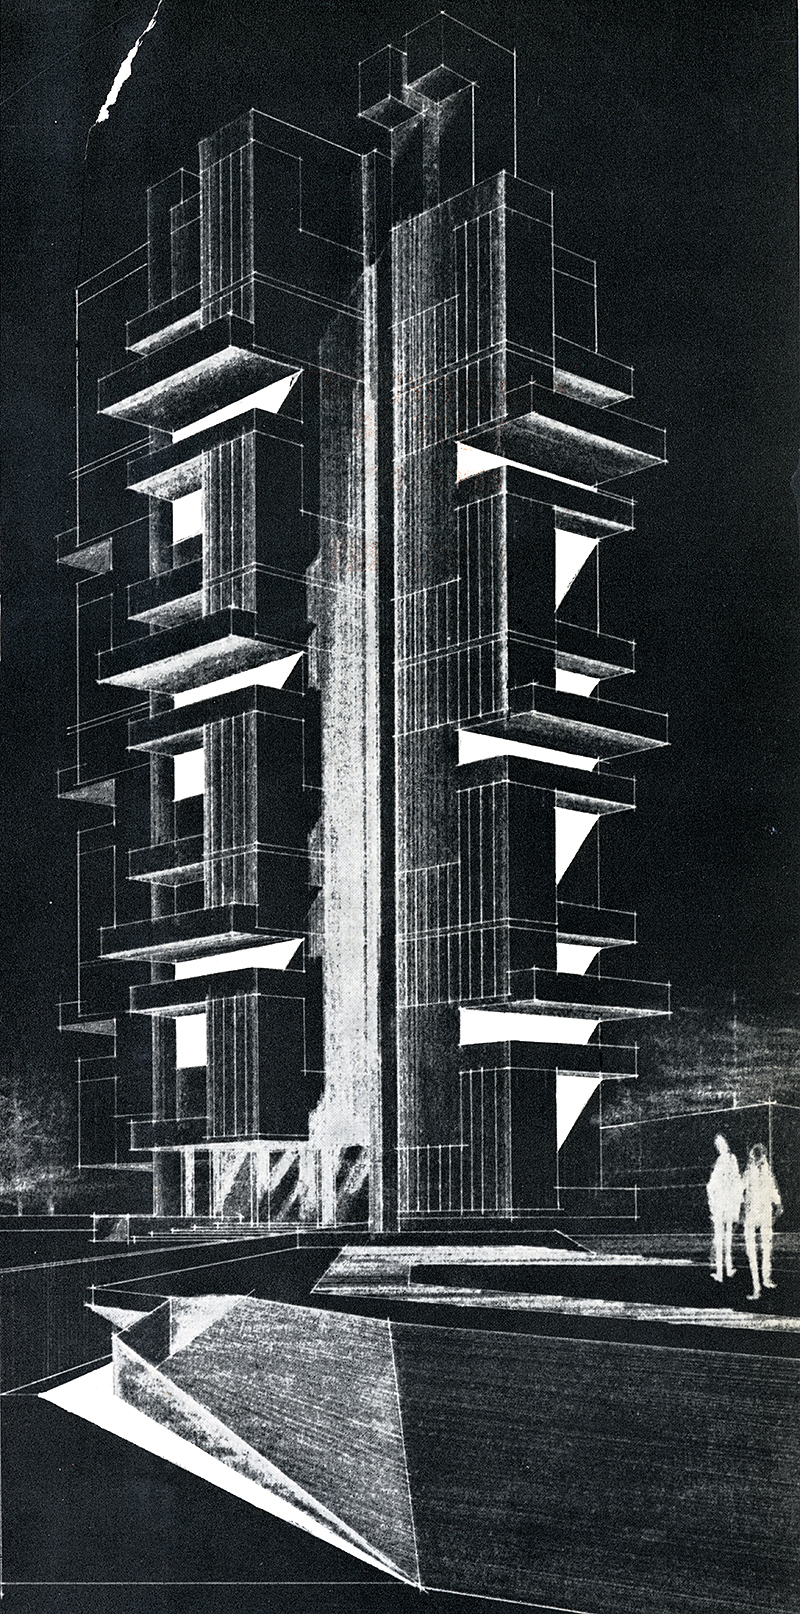 Gollins Melvin and Ward. Architectural Review v.133 n.791 Jan 1963, cover